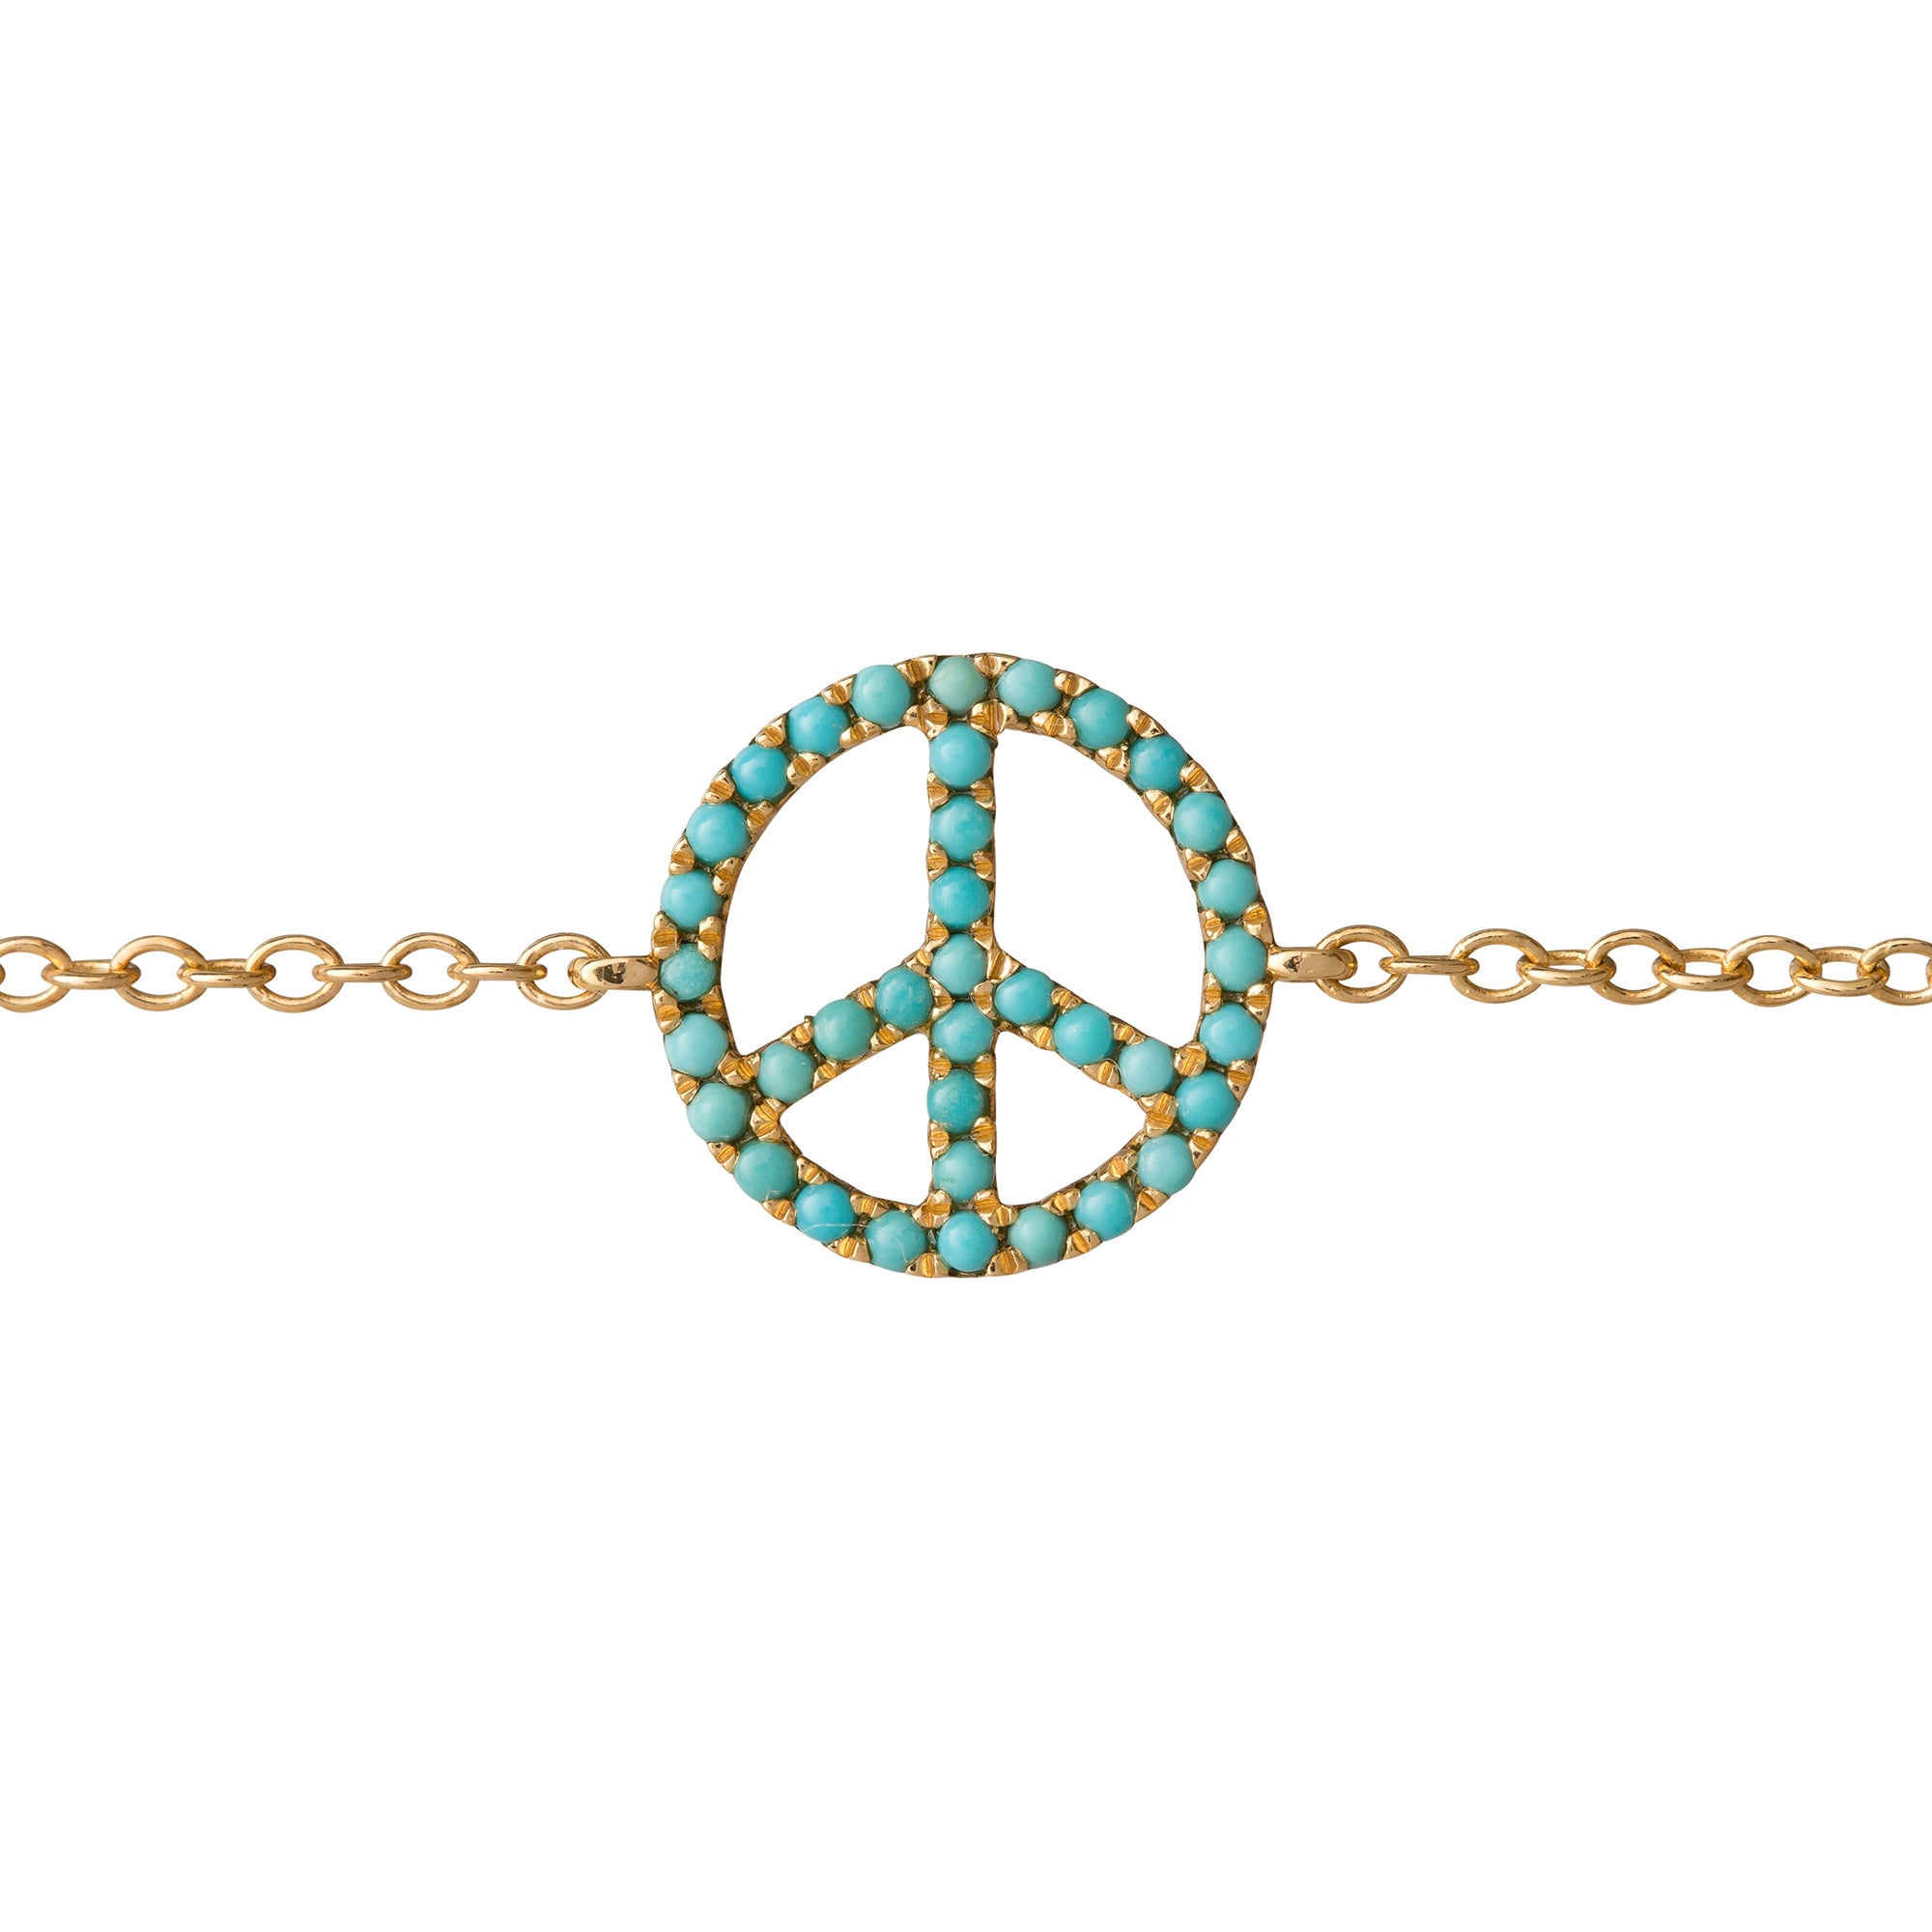 Turquoise Peace Charm Bracelet by Rosa de la Cruz for Broken English Jewelry